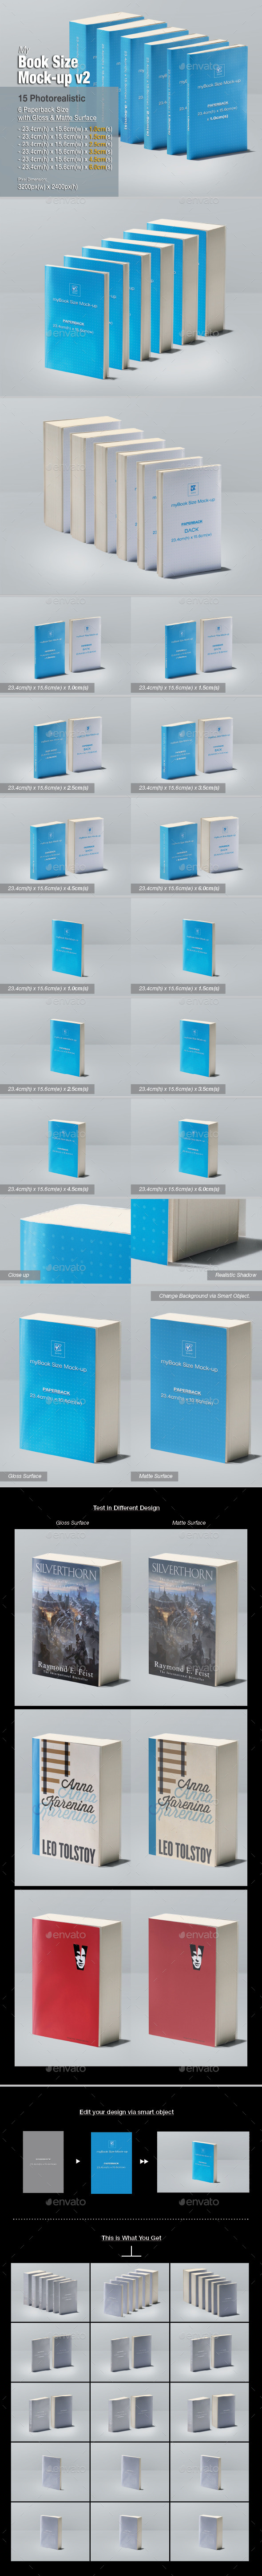 GraphicRiver myBook Size Mock-up v2 11314639